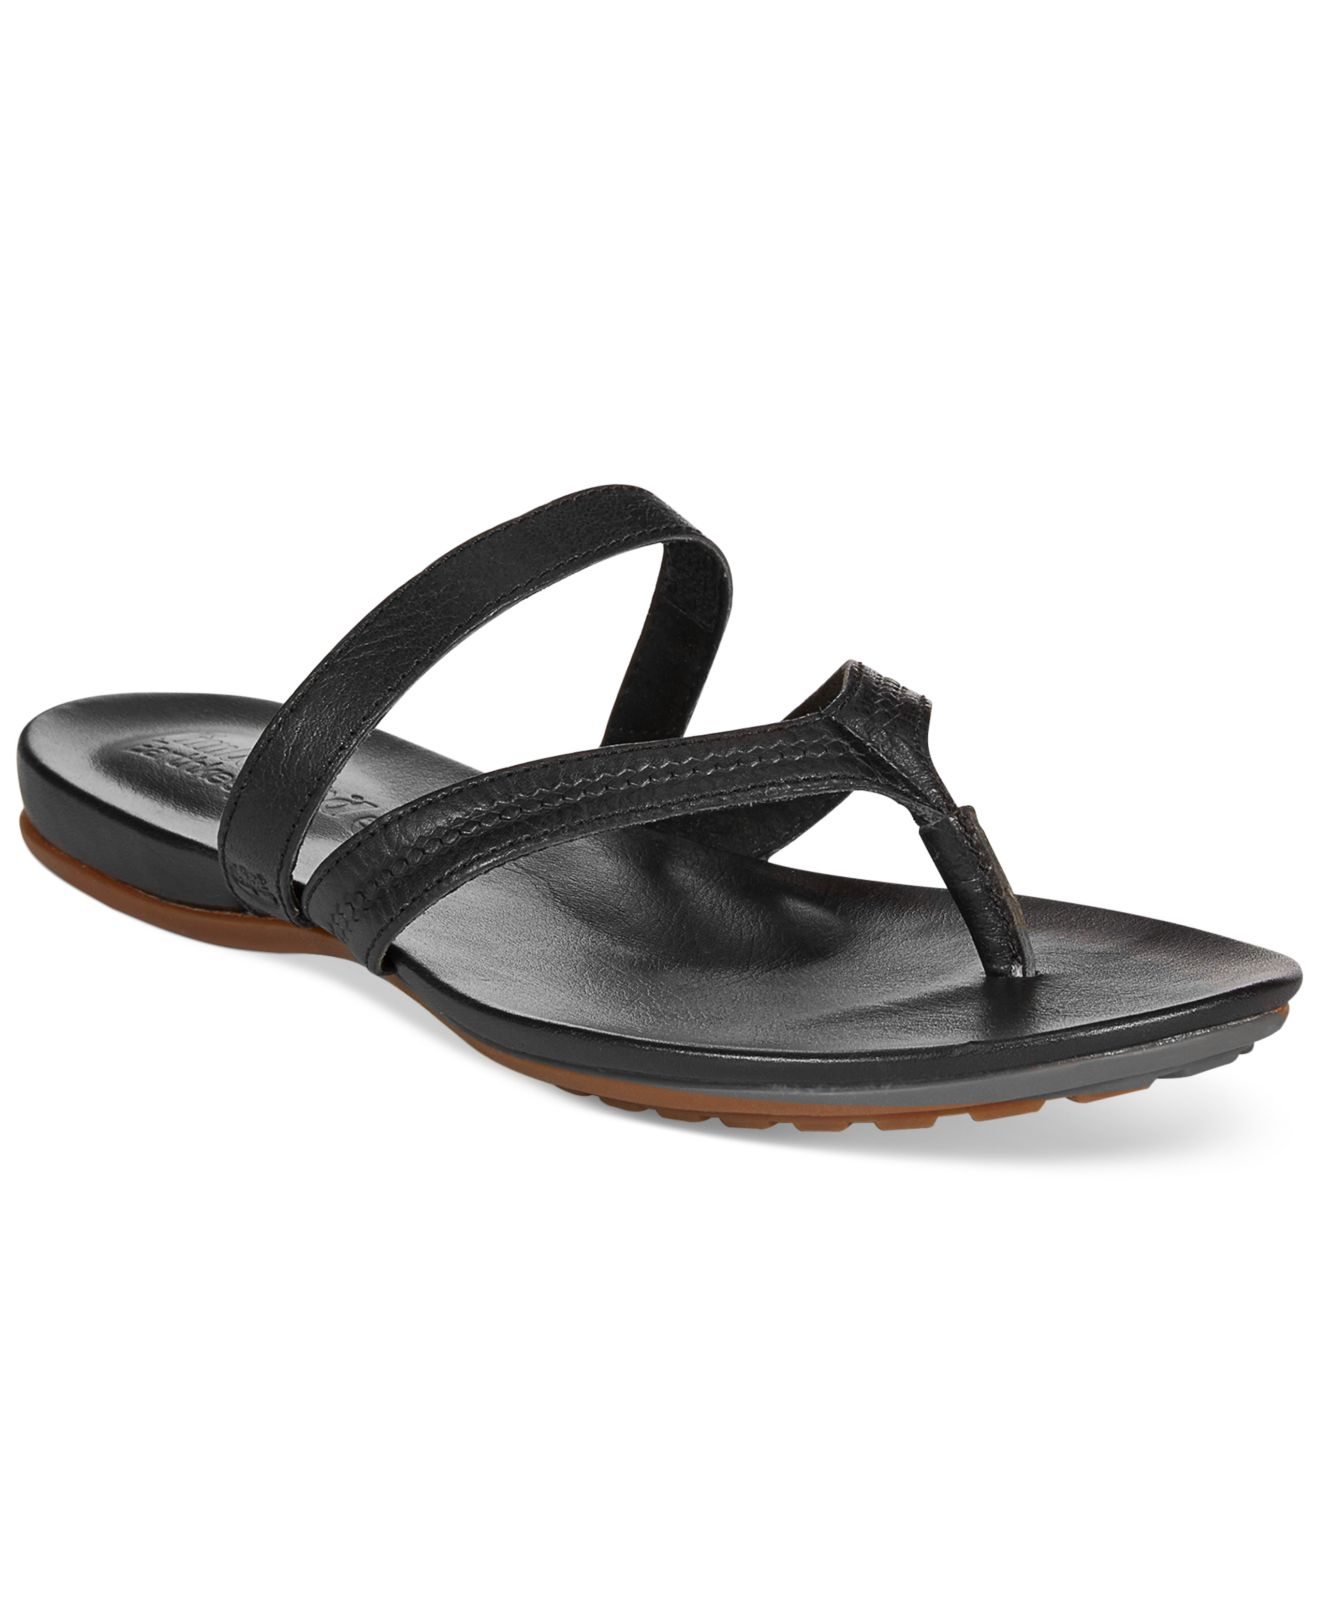 1379e3f92ffb Popular View All Designer Sandals View All Daniel Designer Sandals